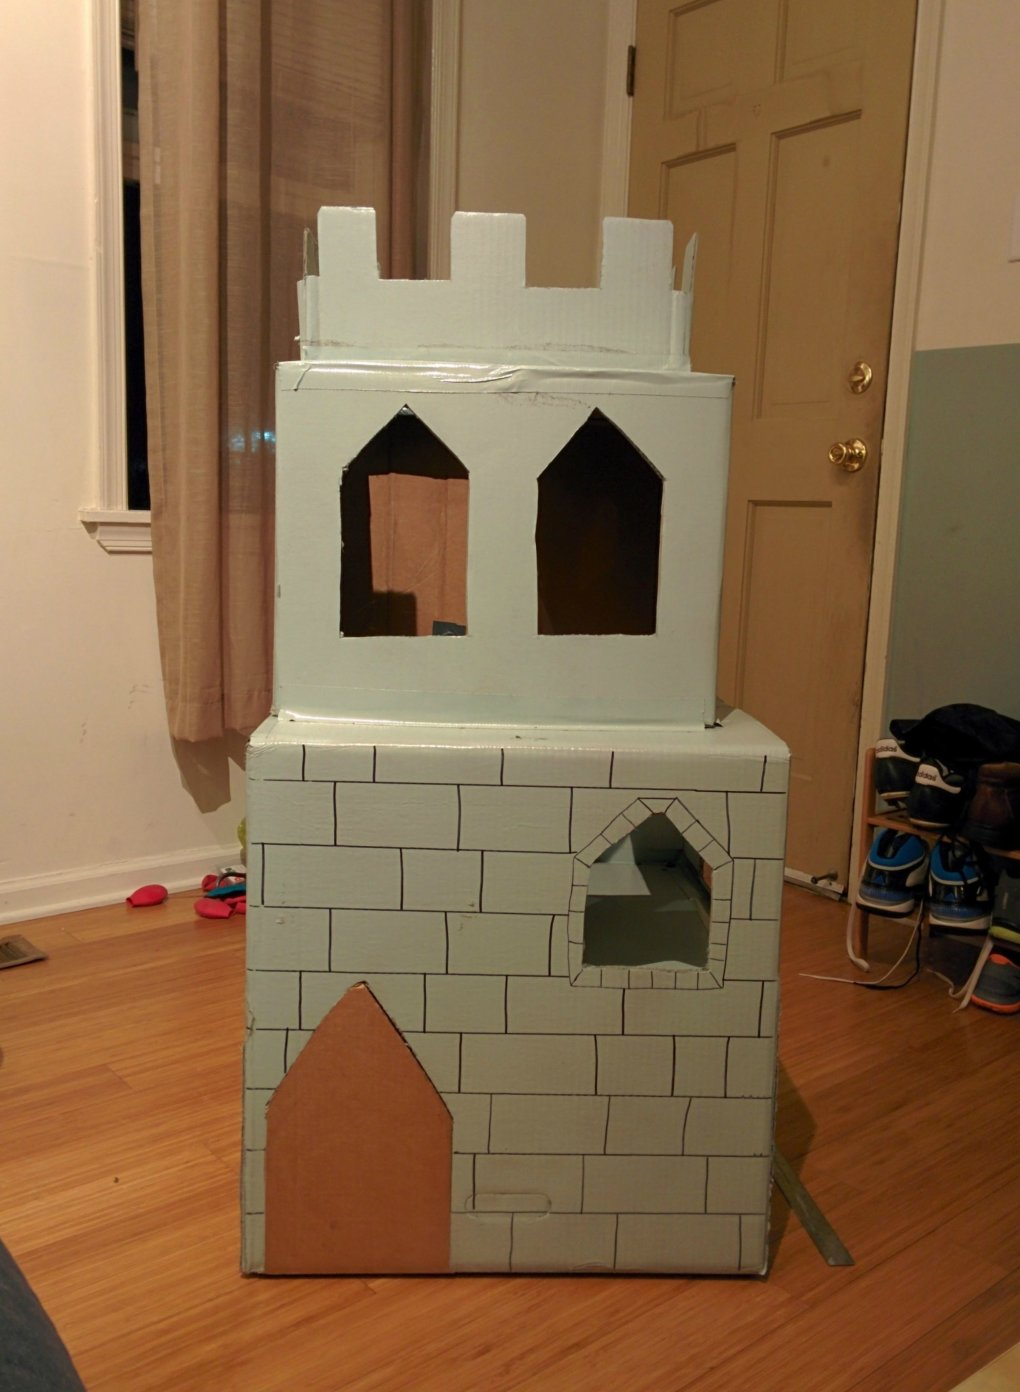 utpygqc - why don't we build cardboard castle to our cats? this is how to do it.